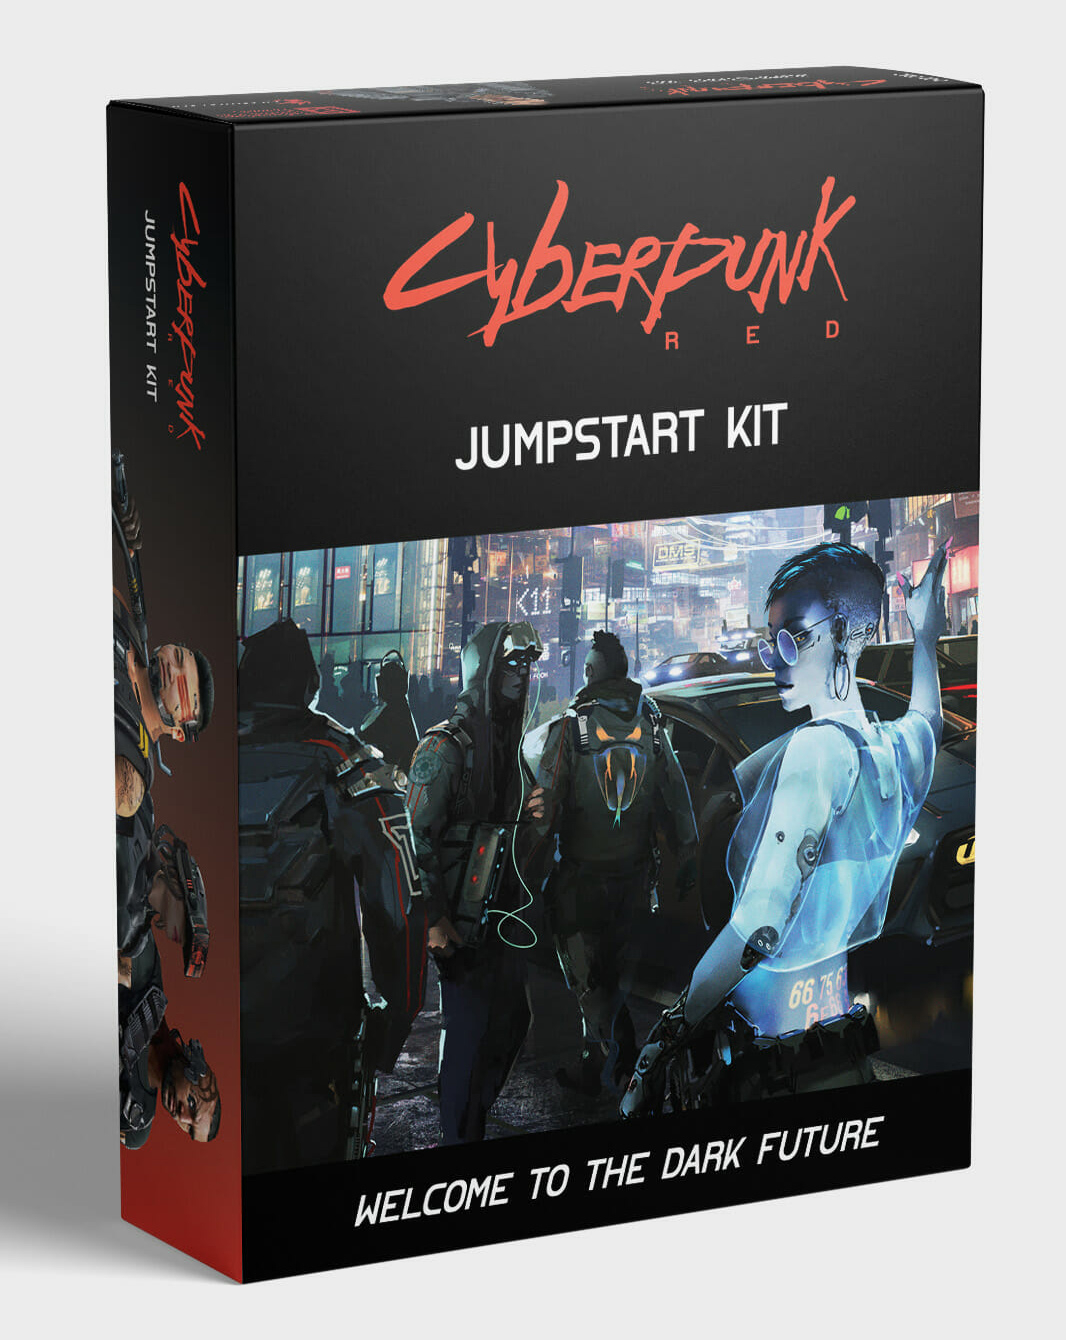 Cyberpunk Red: Jumpstart Kit - EN